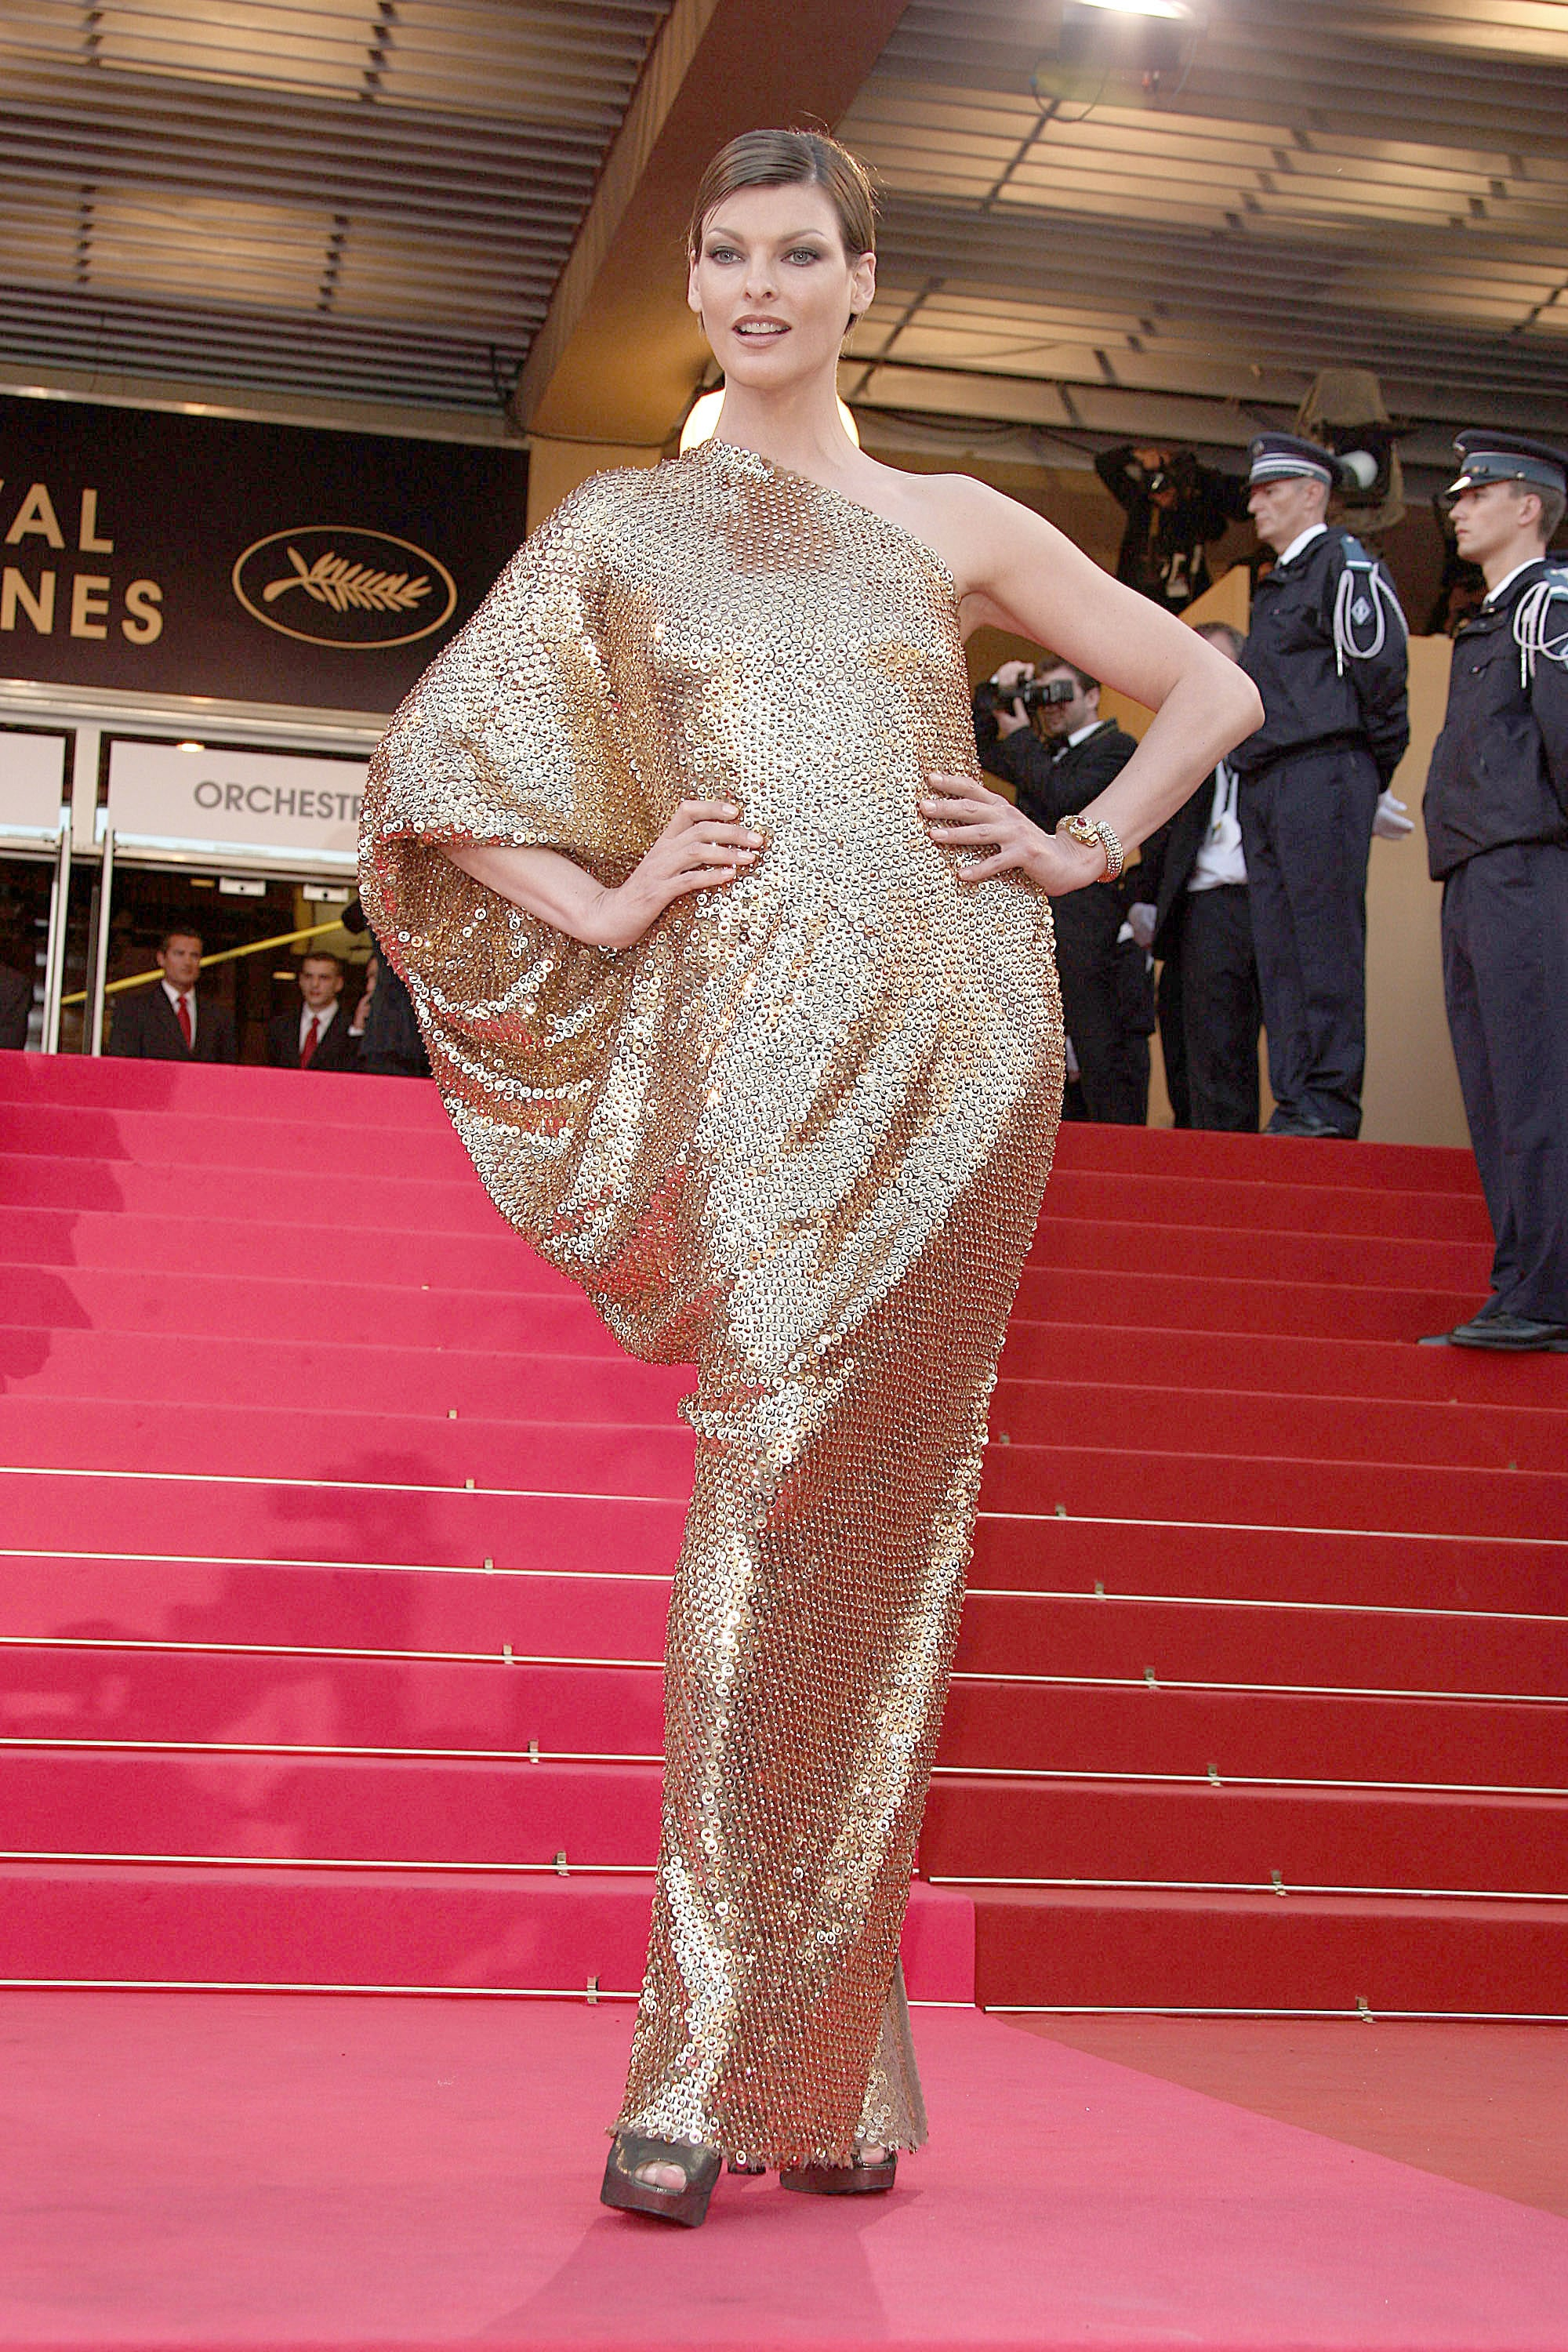 Linda Evangelista shimmered in gold Lanvin at the 2008 festival premiere of Indiana Jones and the Kingdom of the Crystal Skull.